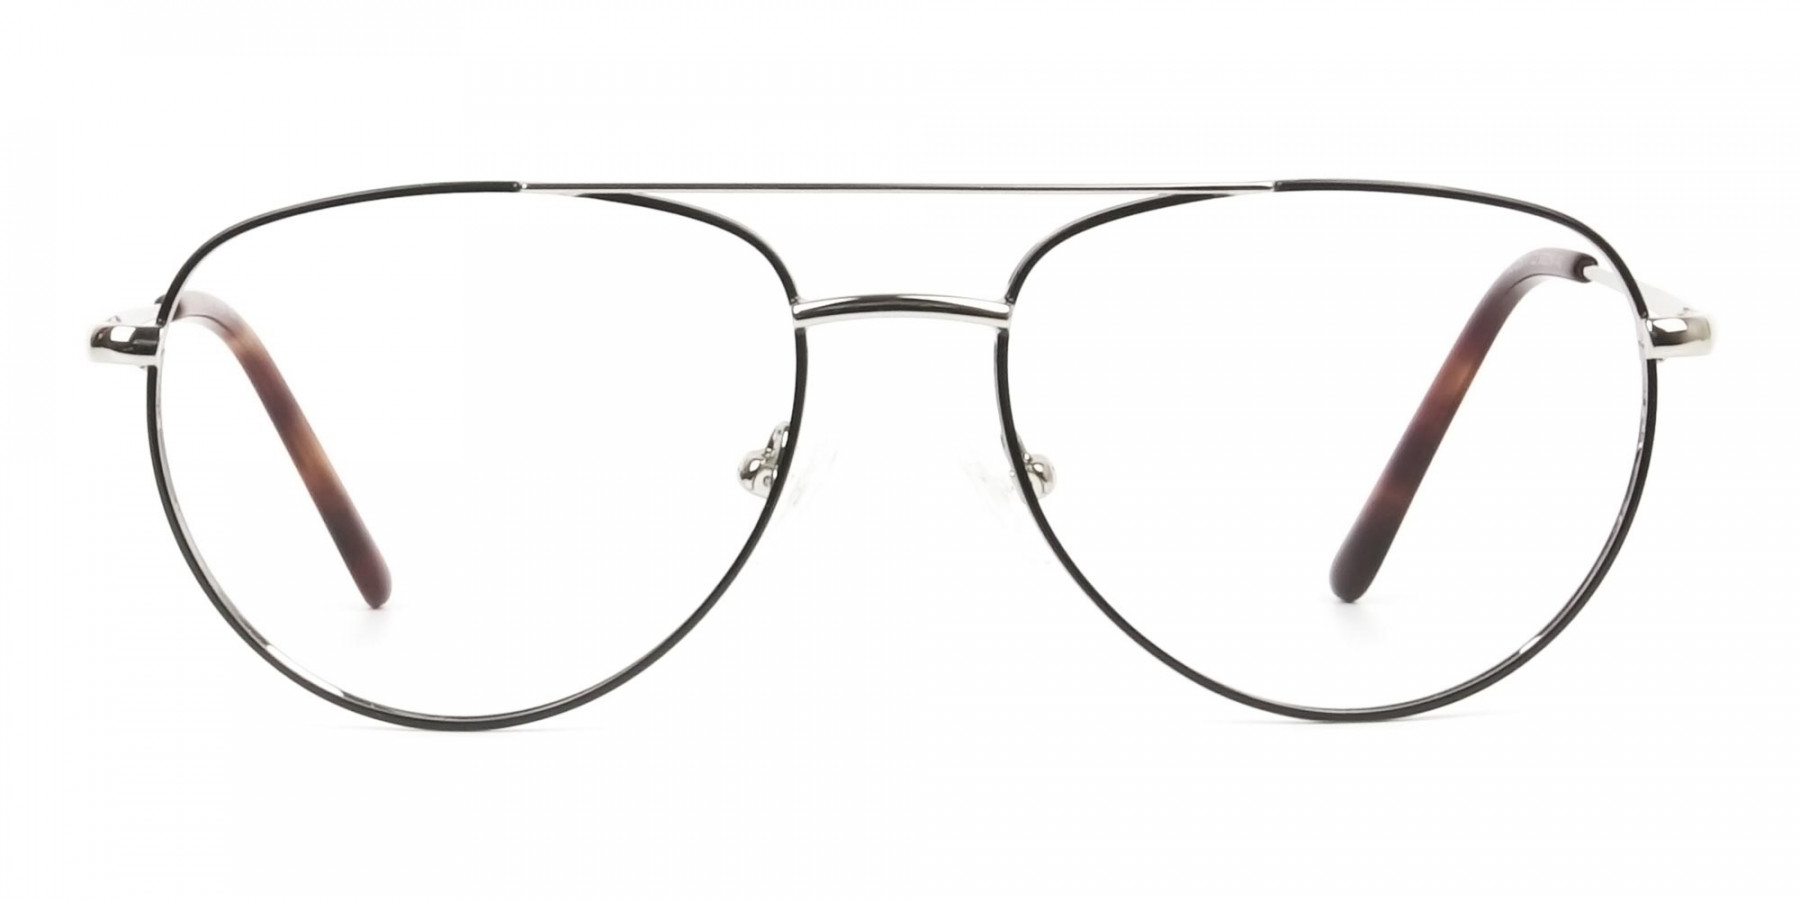 Black & Silver Aviator Glasses in Metal - 1